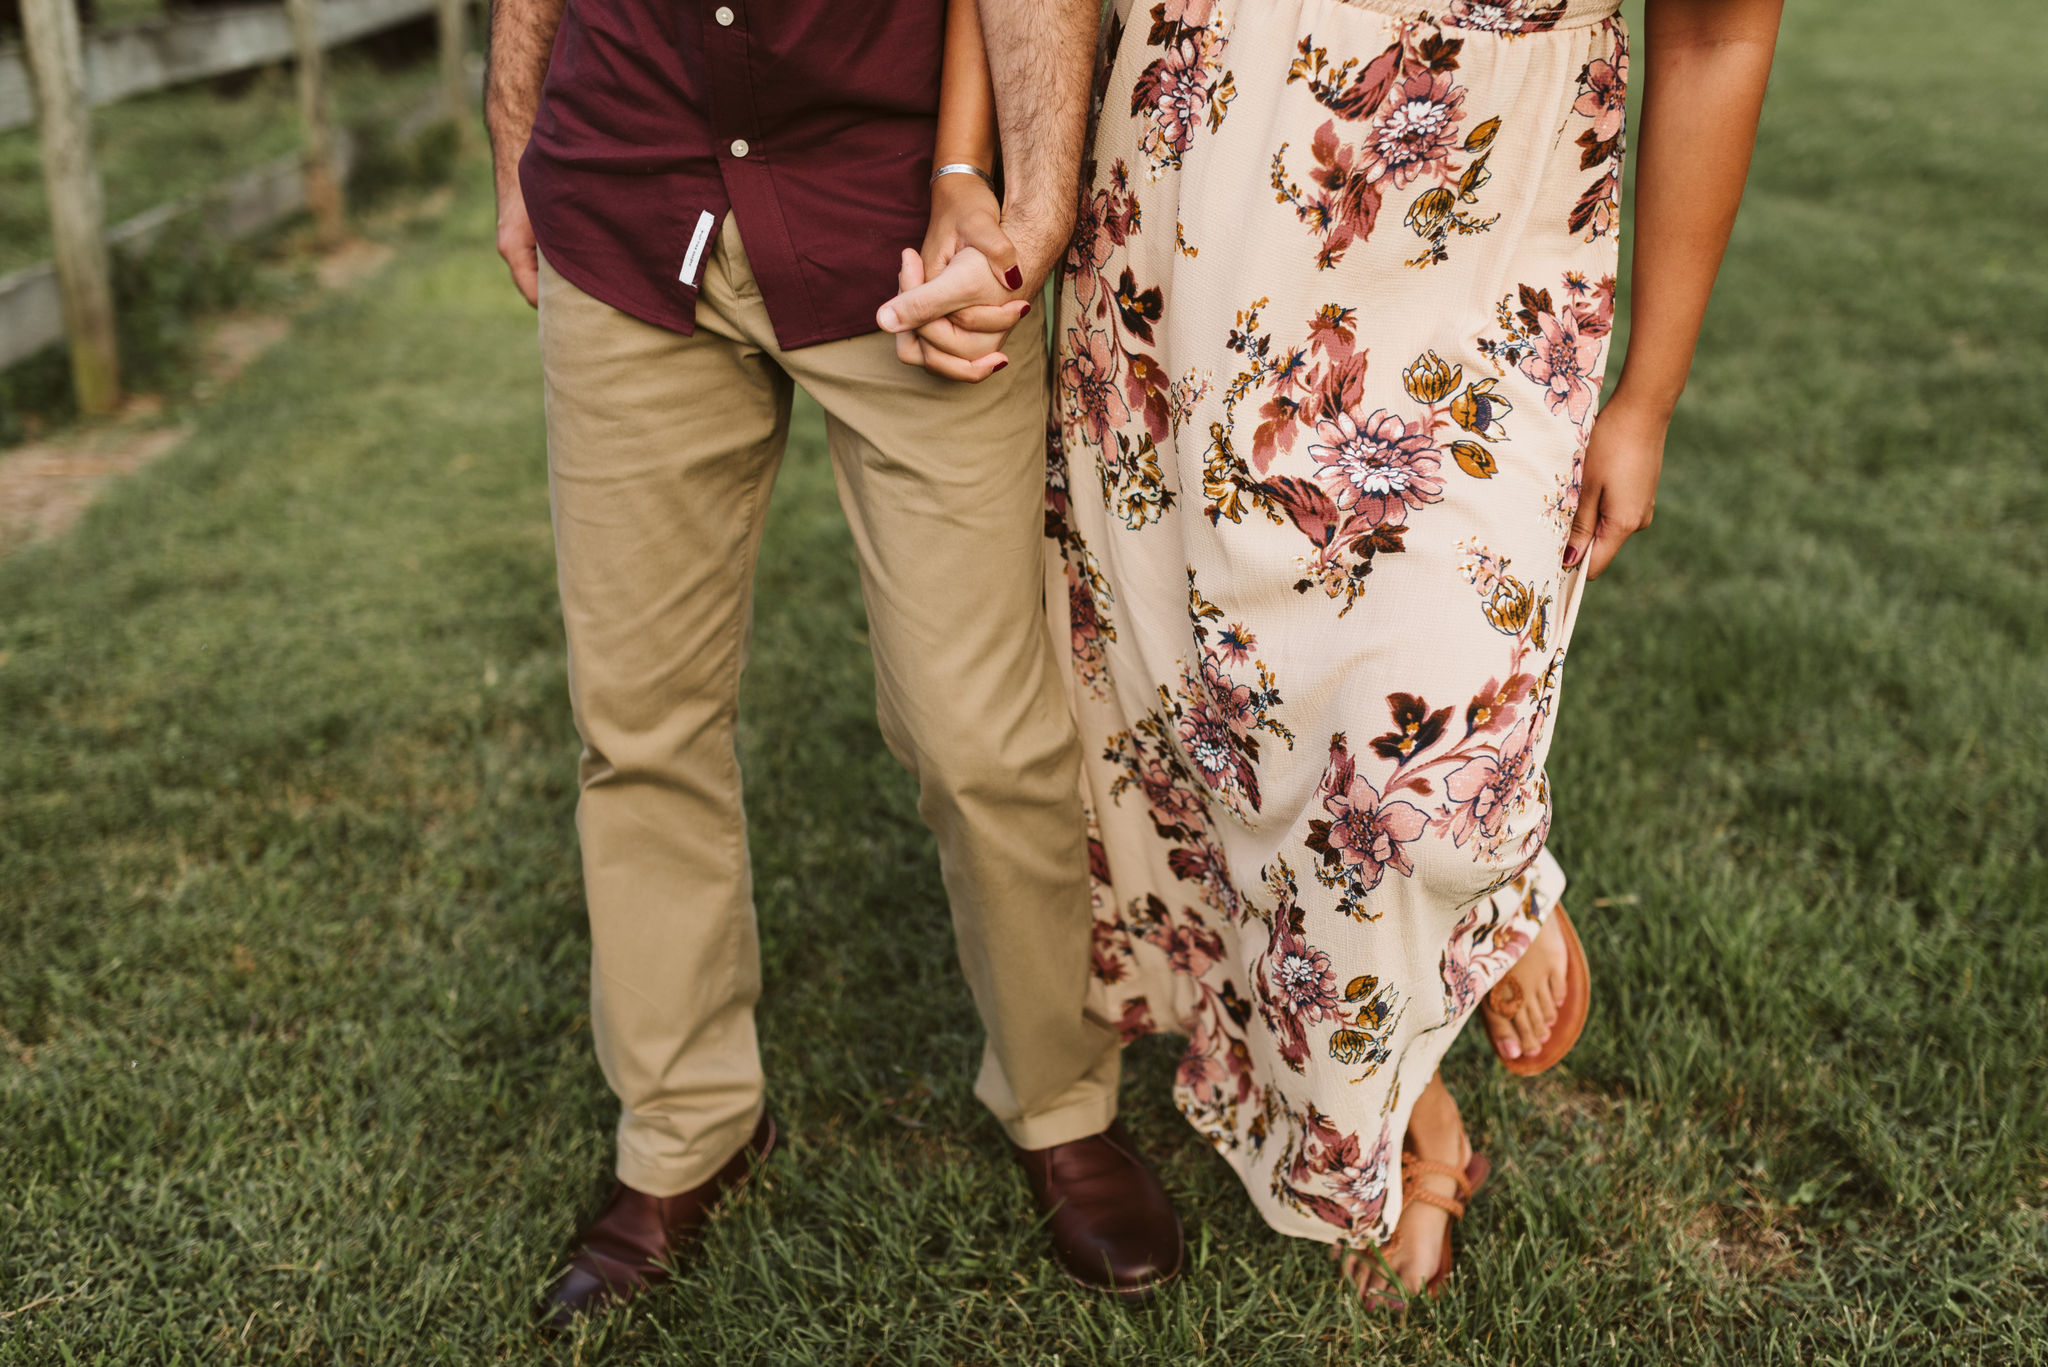 Frederick Maryland, Baltimore Wedding Photographer, Engagement, Bend in the River Farm, Outdoor, Rustic, Nature, Bride and Groom Holding Hands, Happy Couple